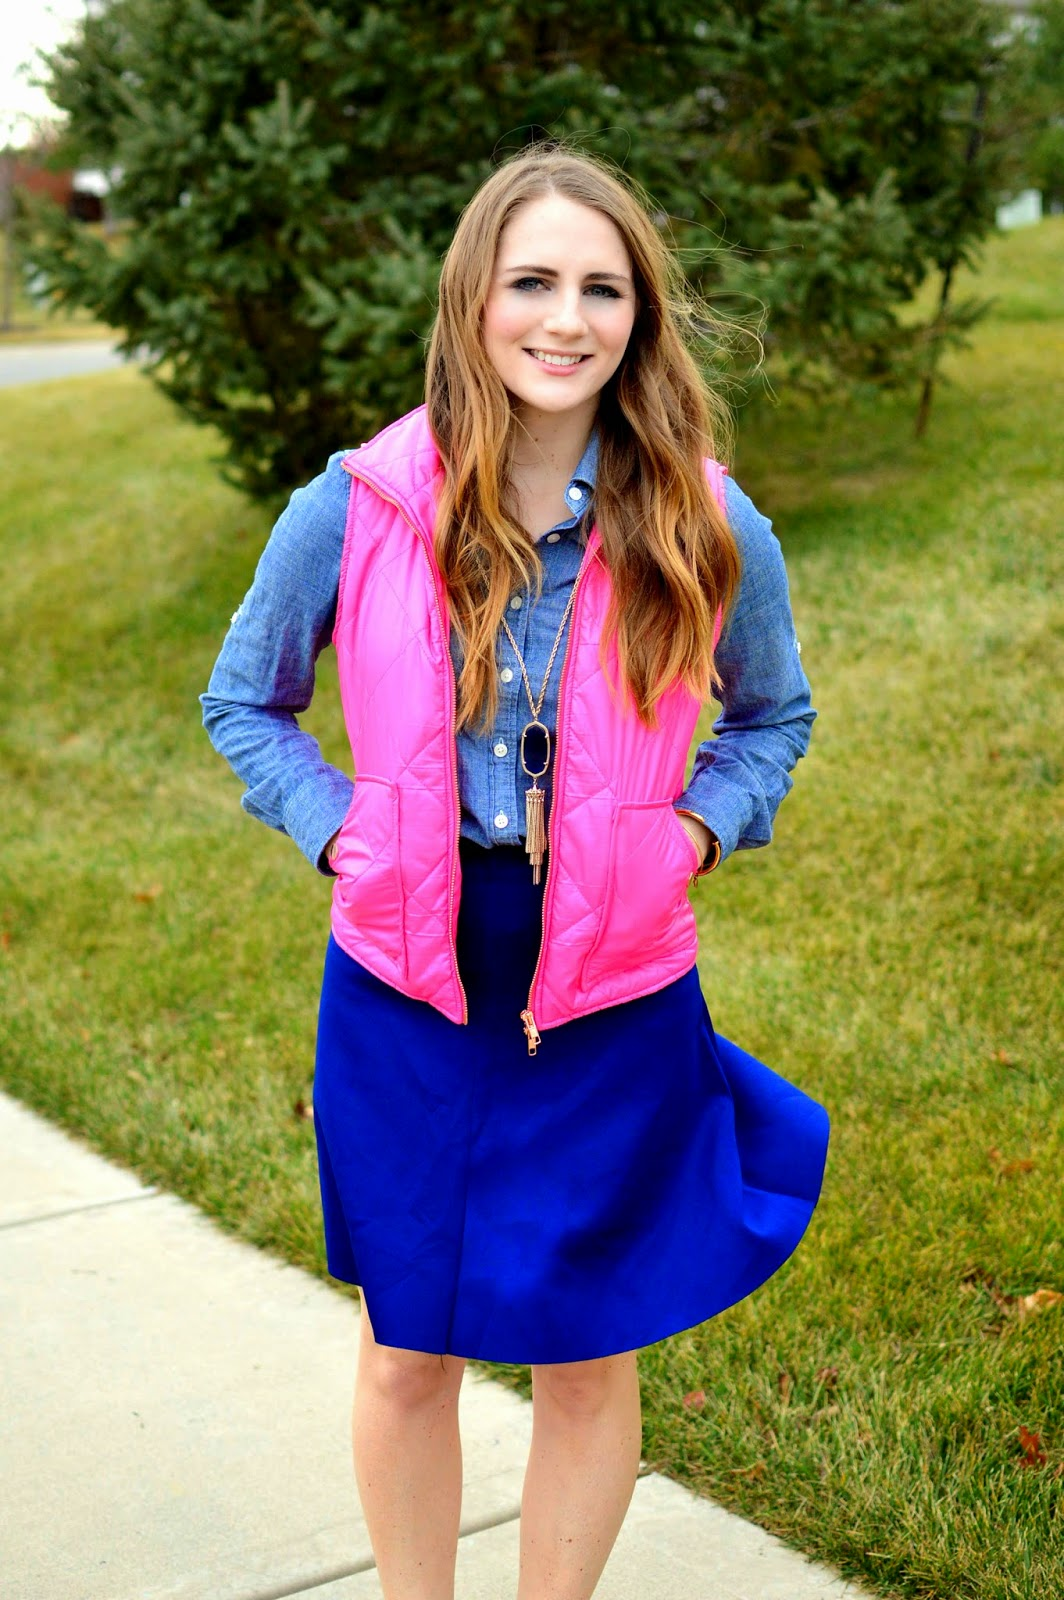 pink puffer vest outfit idea as seen on www.amemoryofus.com